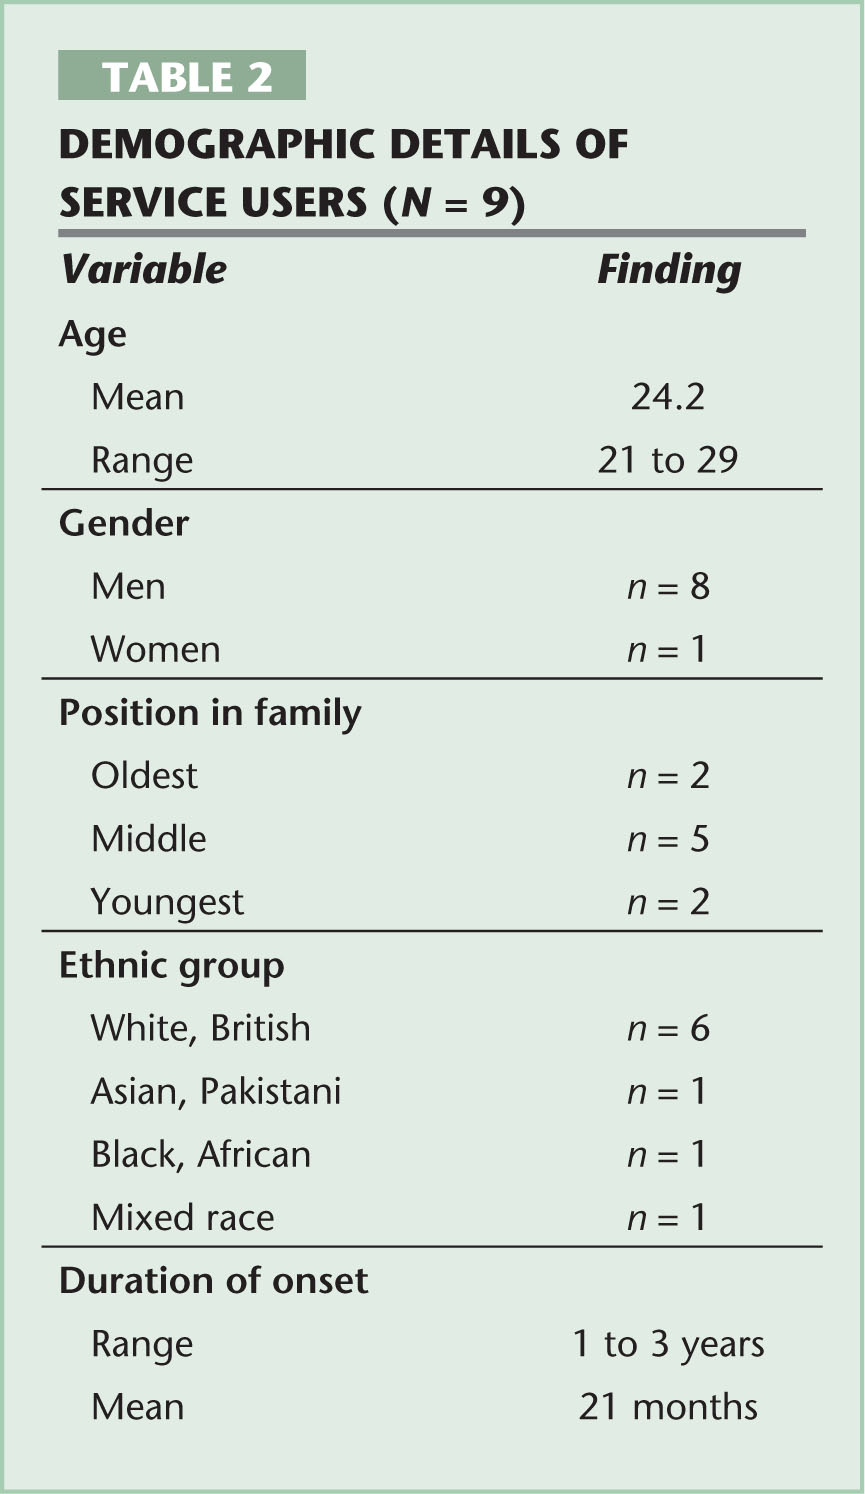 Demographic Details of Service Users (n = 9)